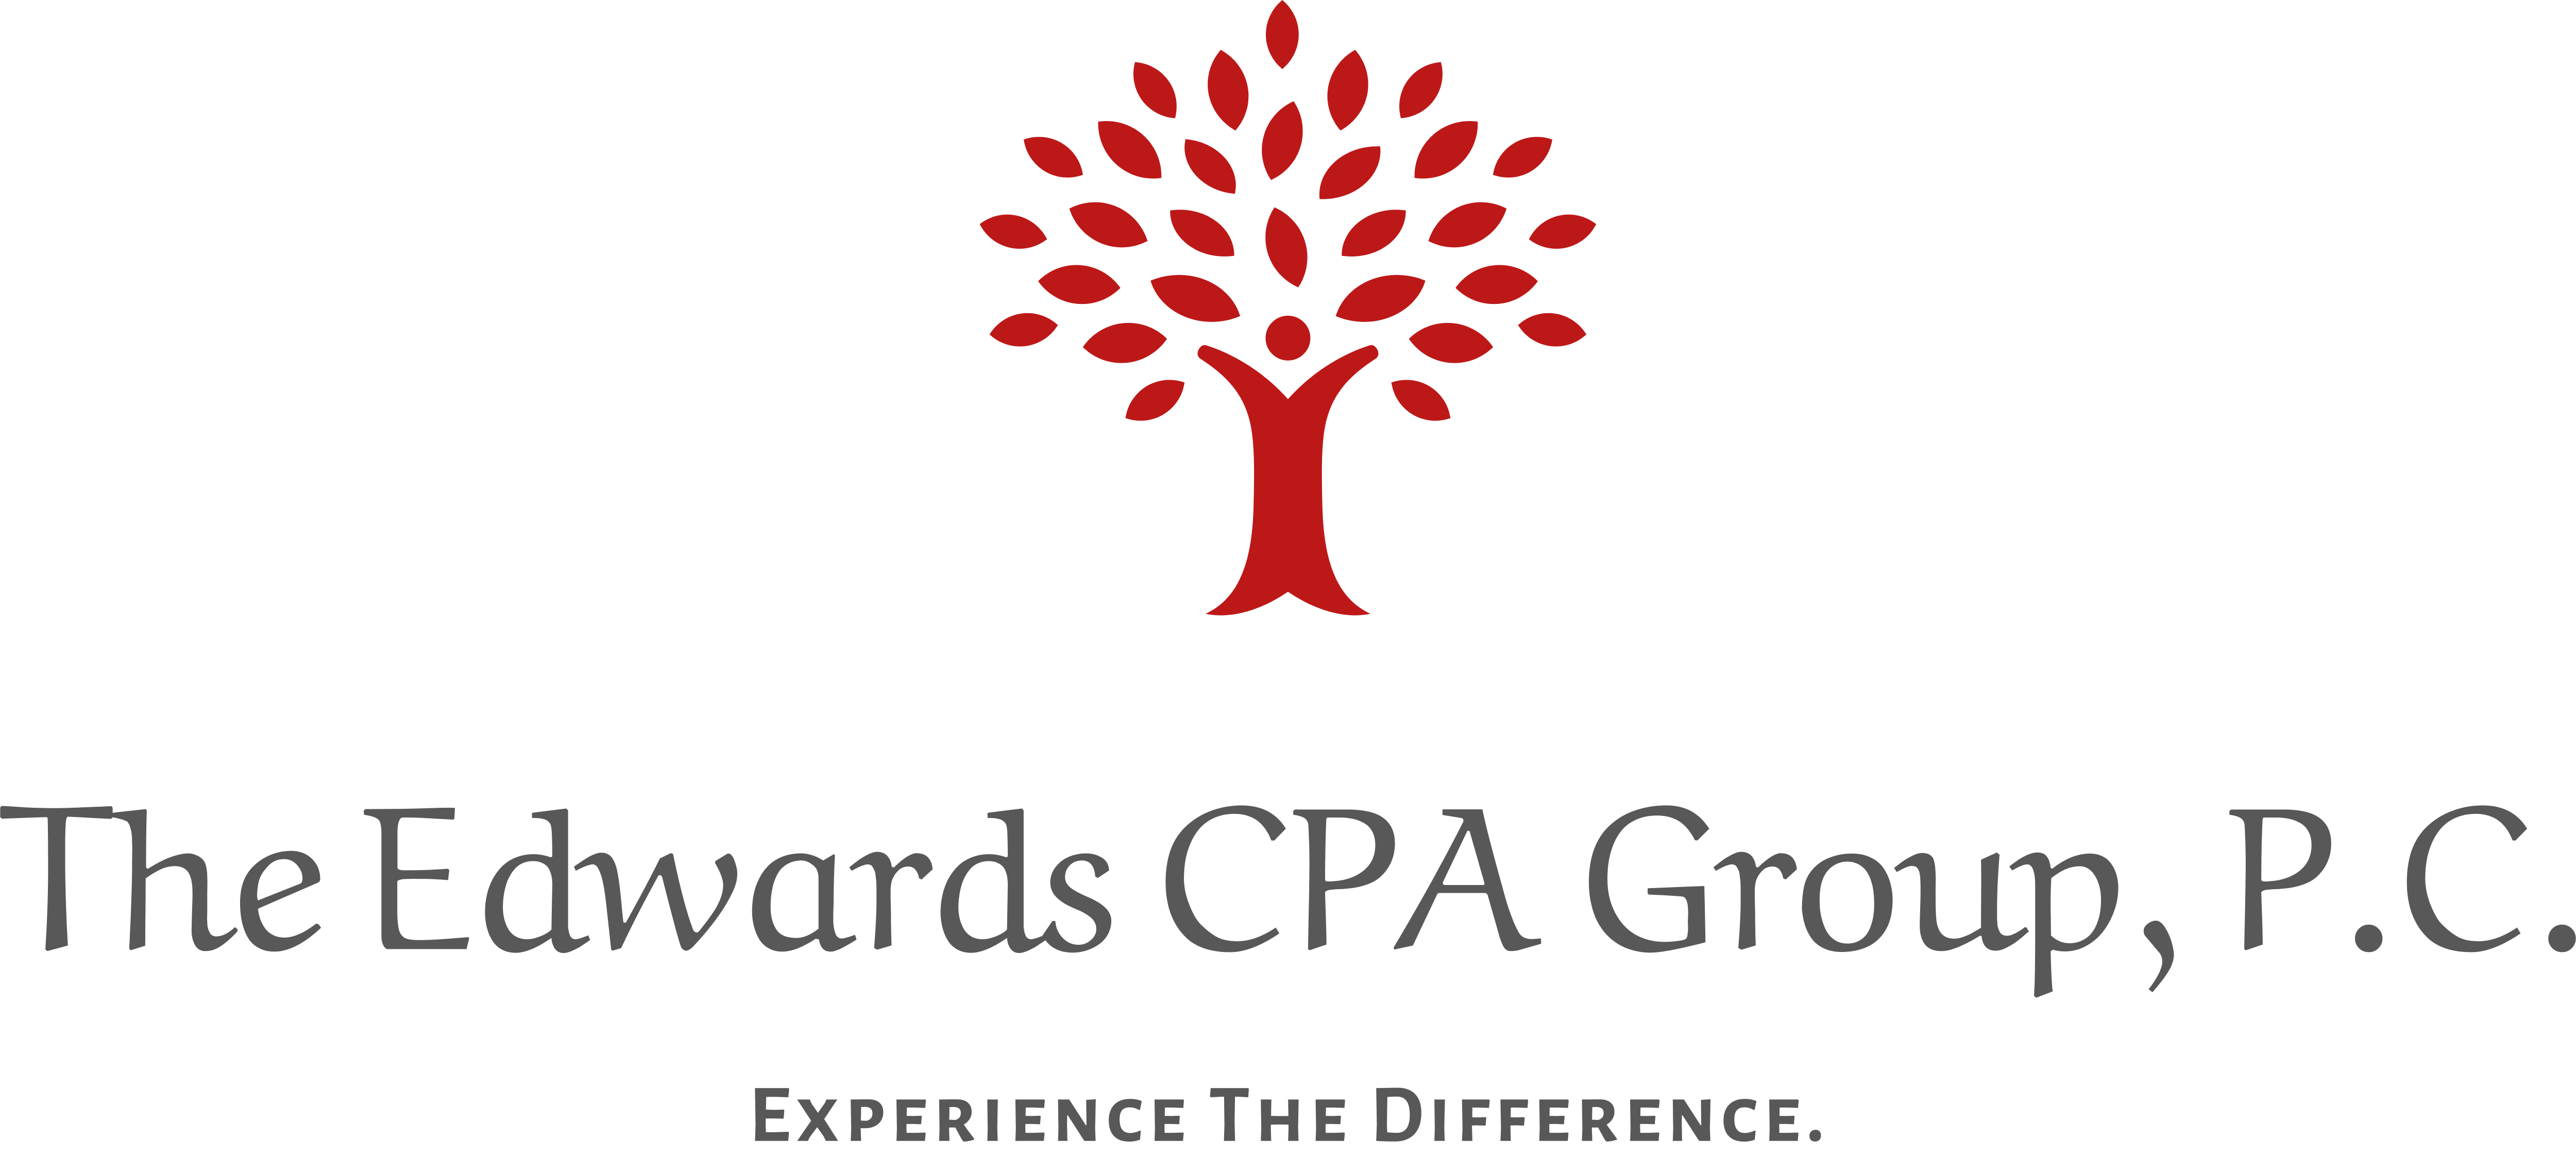 The Edwards CPA Group, P.C.